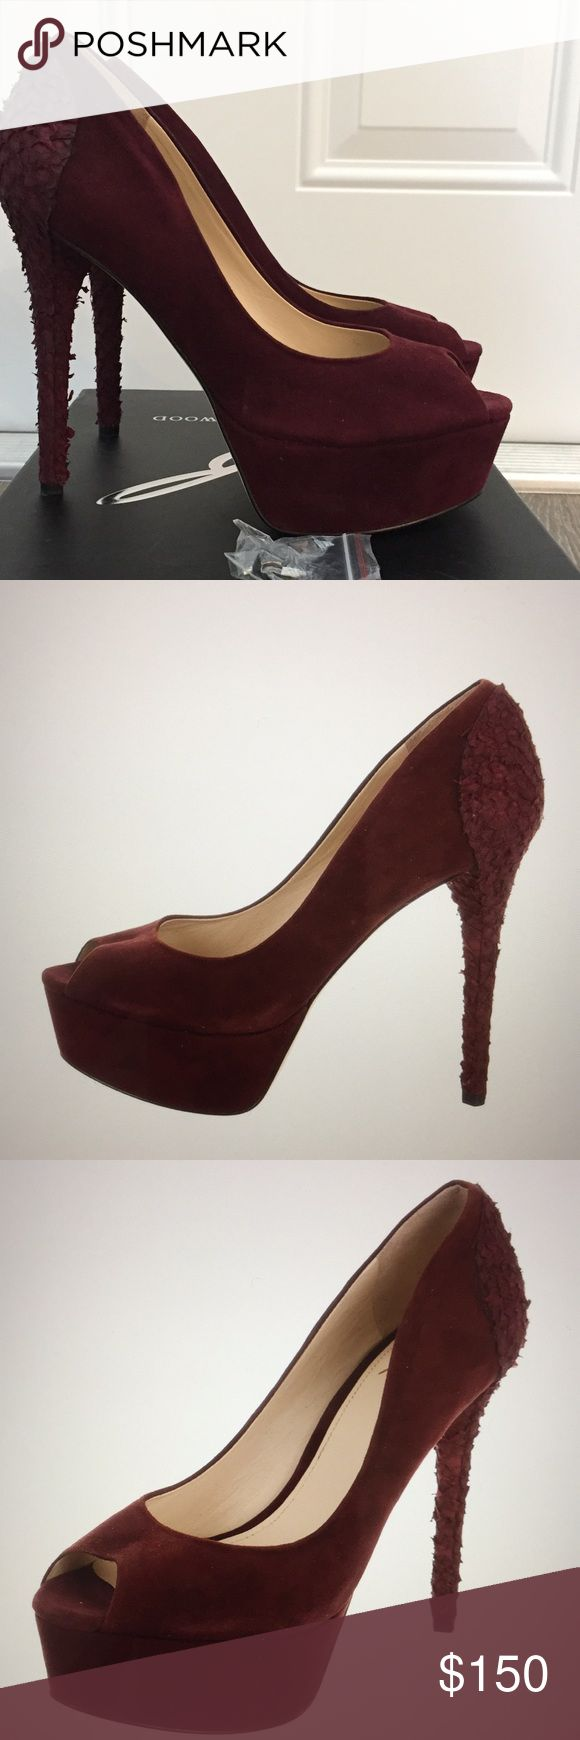 "B Brian Atwood Pumps Worn Once!!! Tag still partially on, comes with box & extra heel taps. Gorgeous, sexy, burgundy suede platform pumps with peep toes, leather fish scale covered heels. Heels 5.5"", platform 1.5"". Absolutely comfortable. Pristine. B Brian Atwood Shoes"